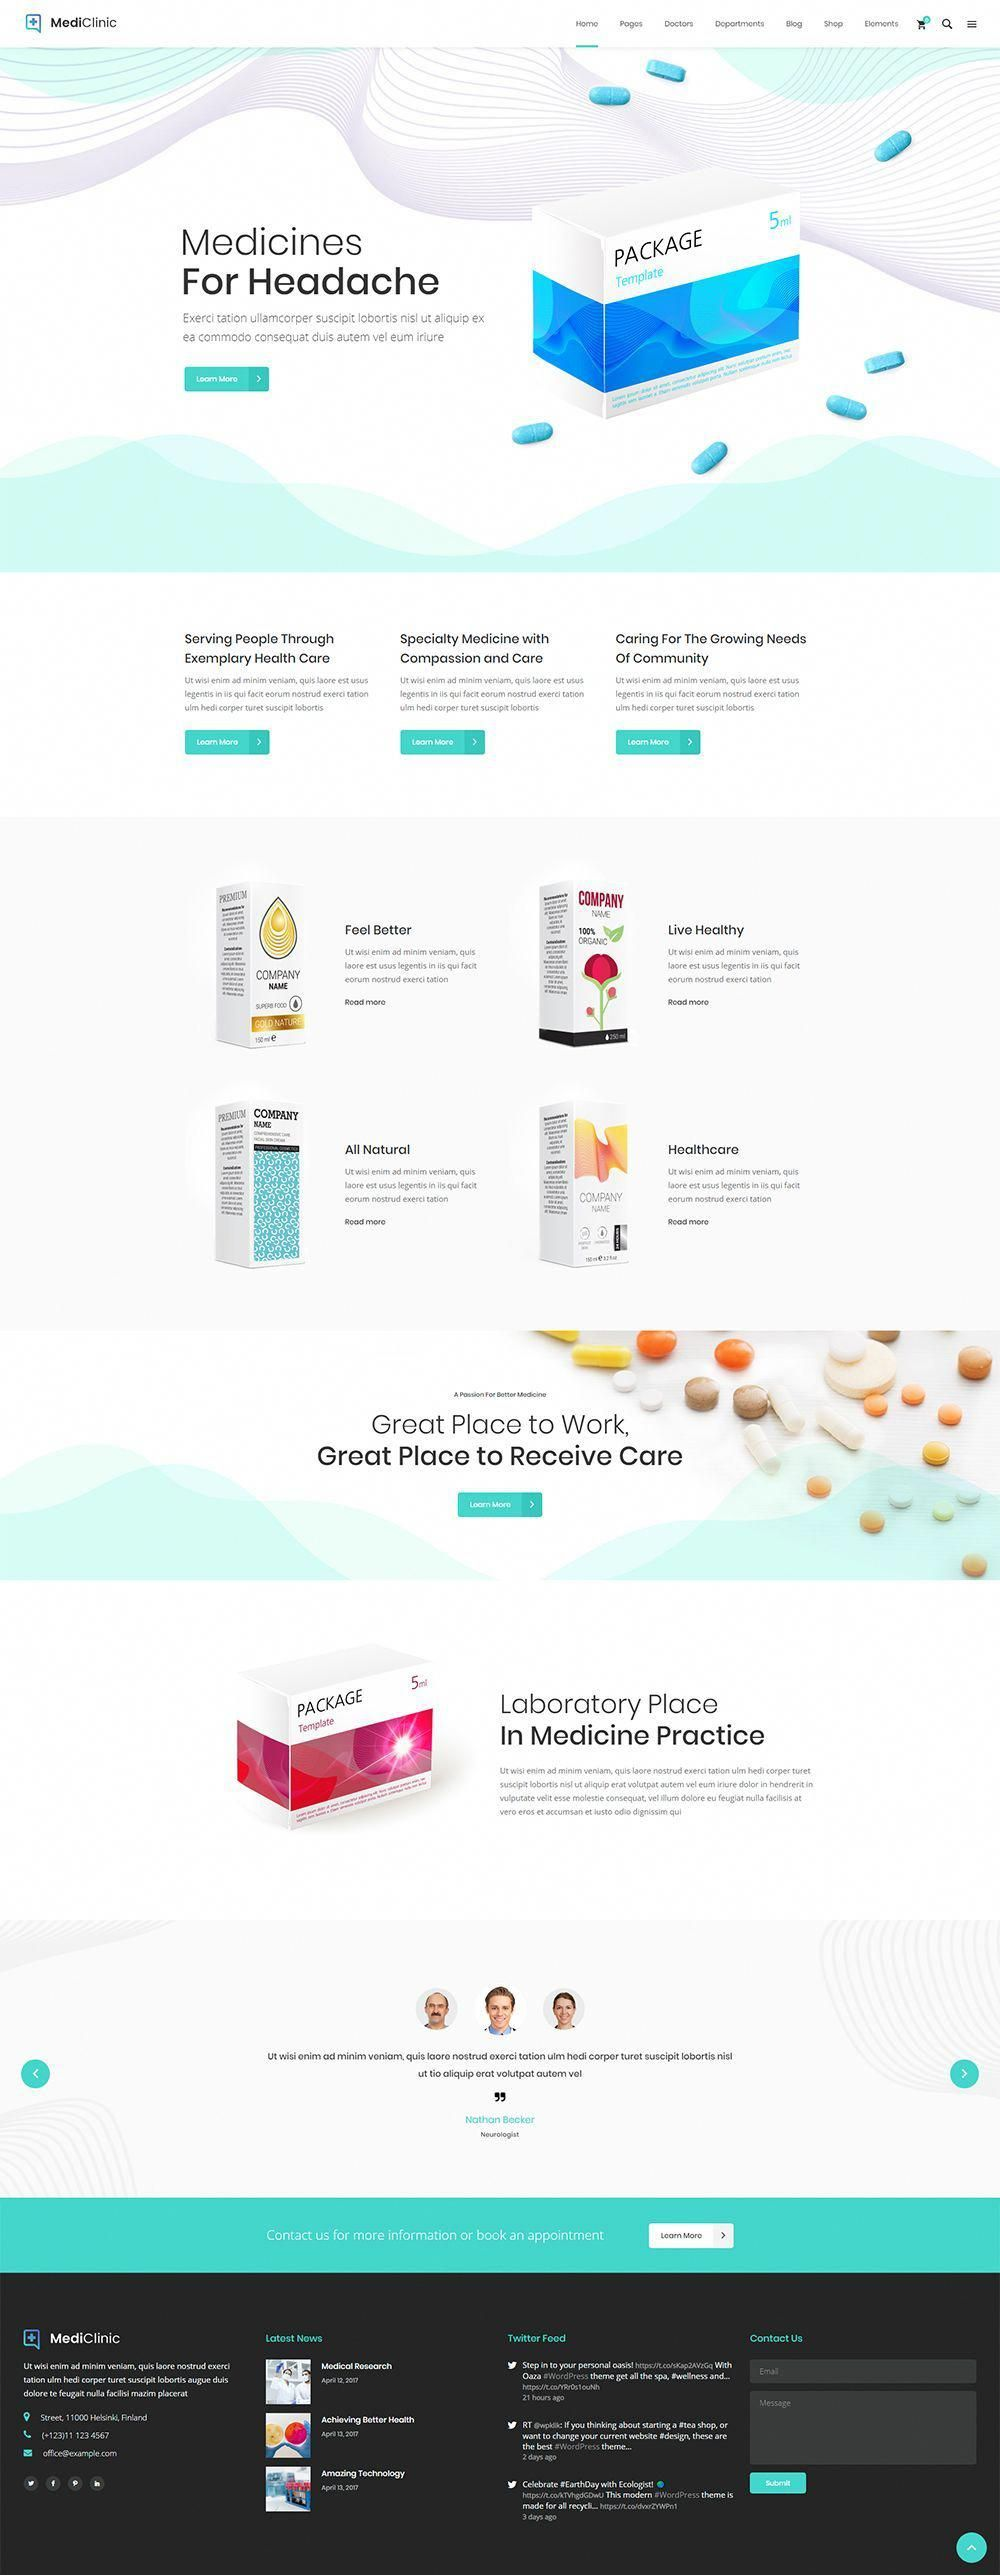 With MediClinic WordPress theme you can offer your medical services effortlessly! #wordpress #theme #layout #design #responsive #webdesign #medical #health #doctor #hospital #clinic #BenefitsOfCoffeeWeightLoss